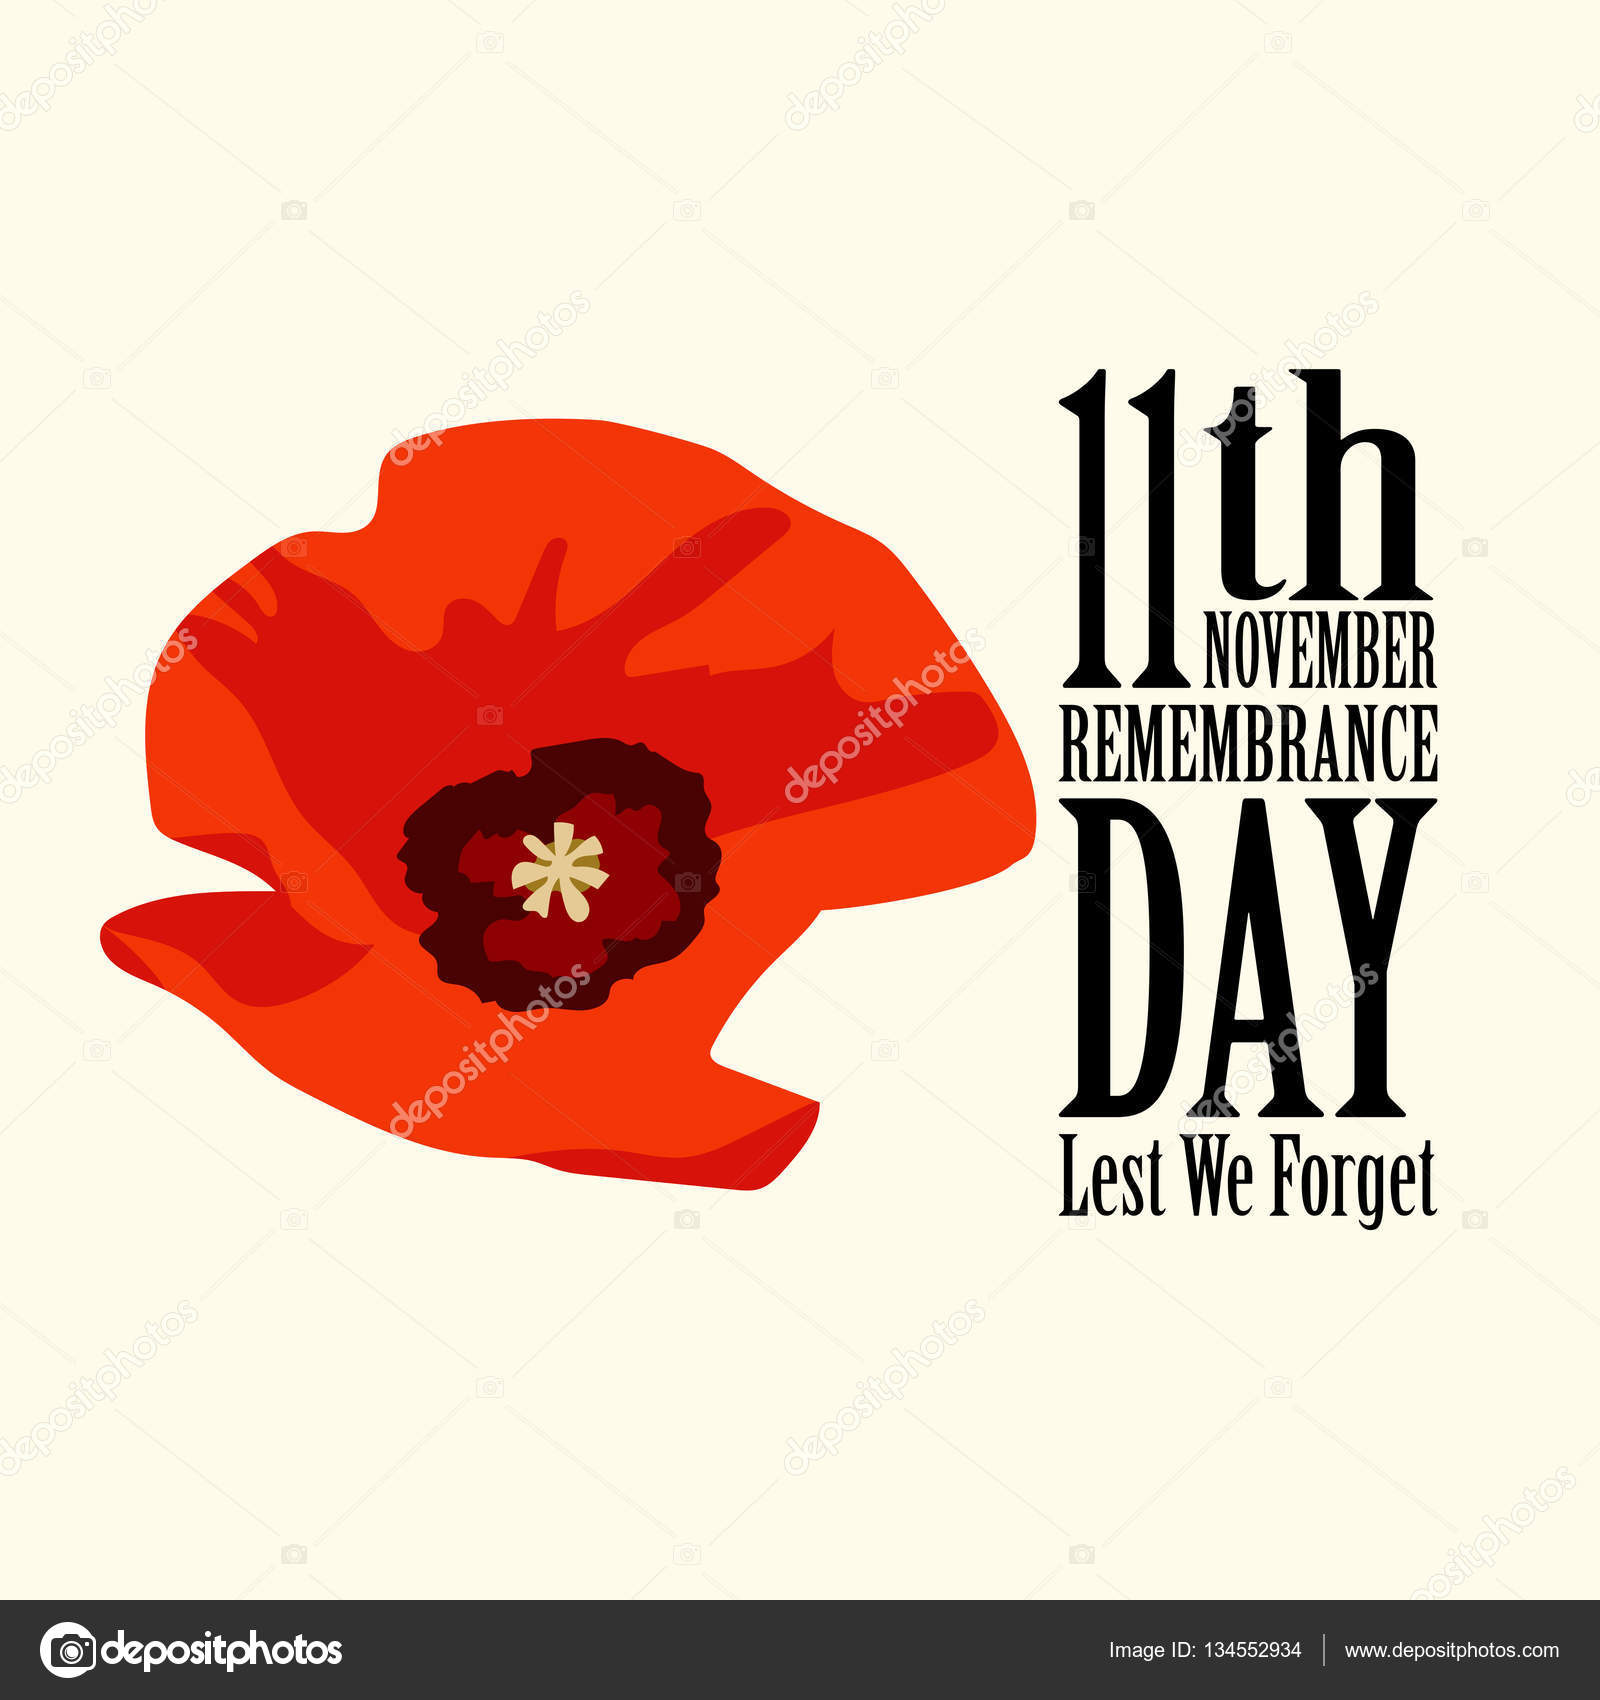 the poppy flower remembrance day u2014 stock vector roilira 134552934